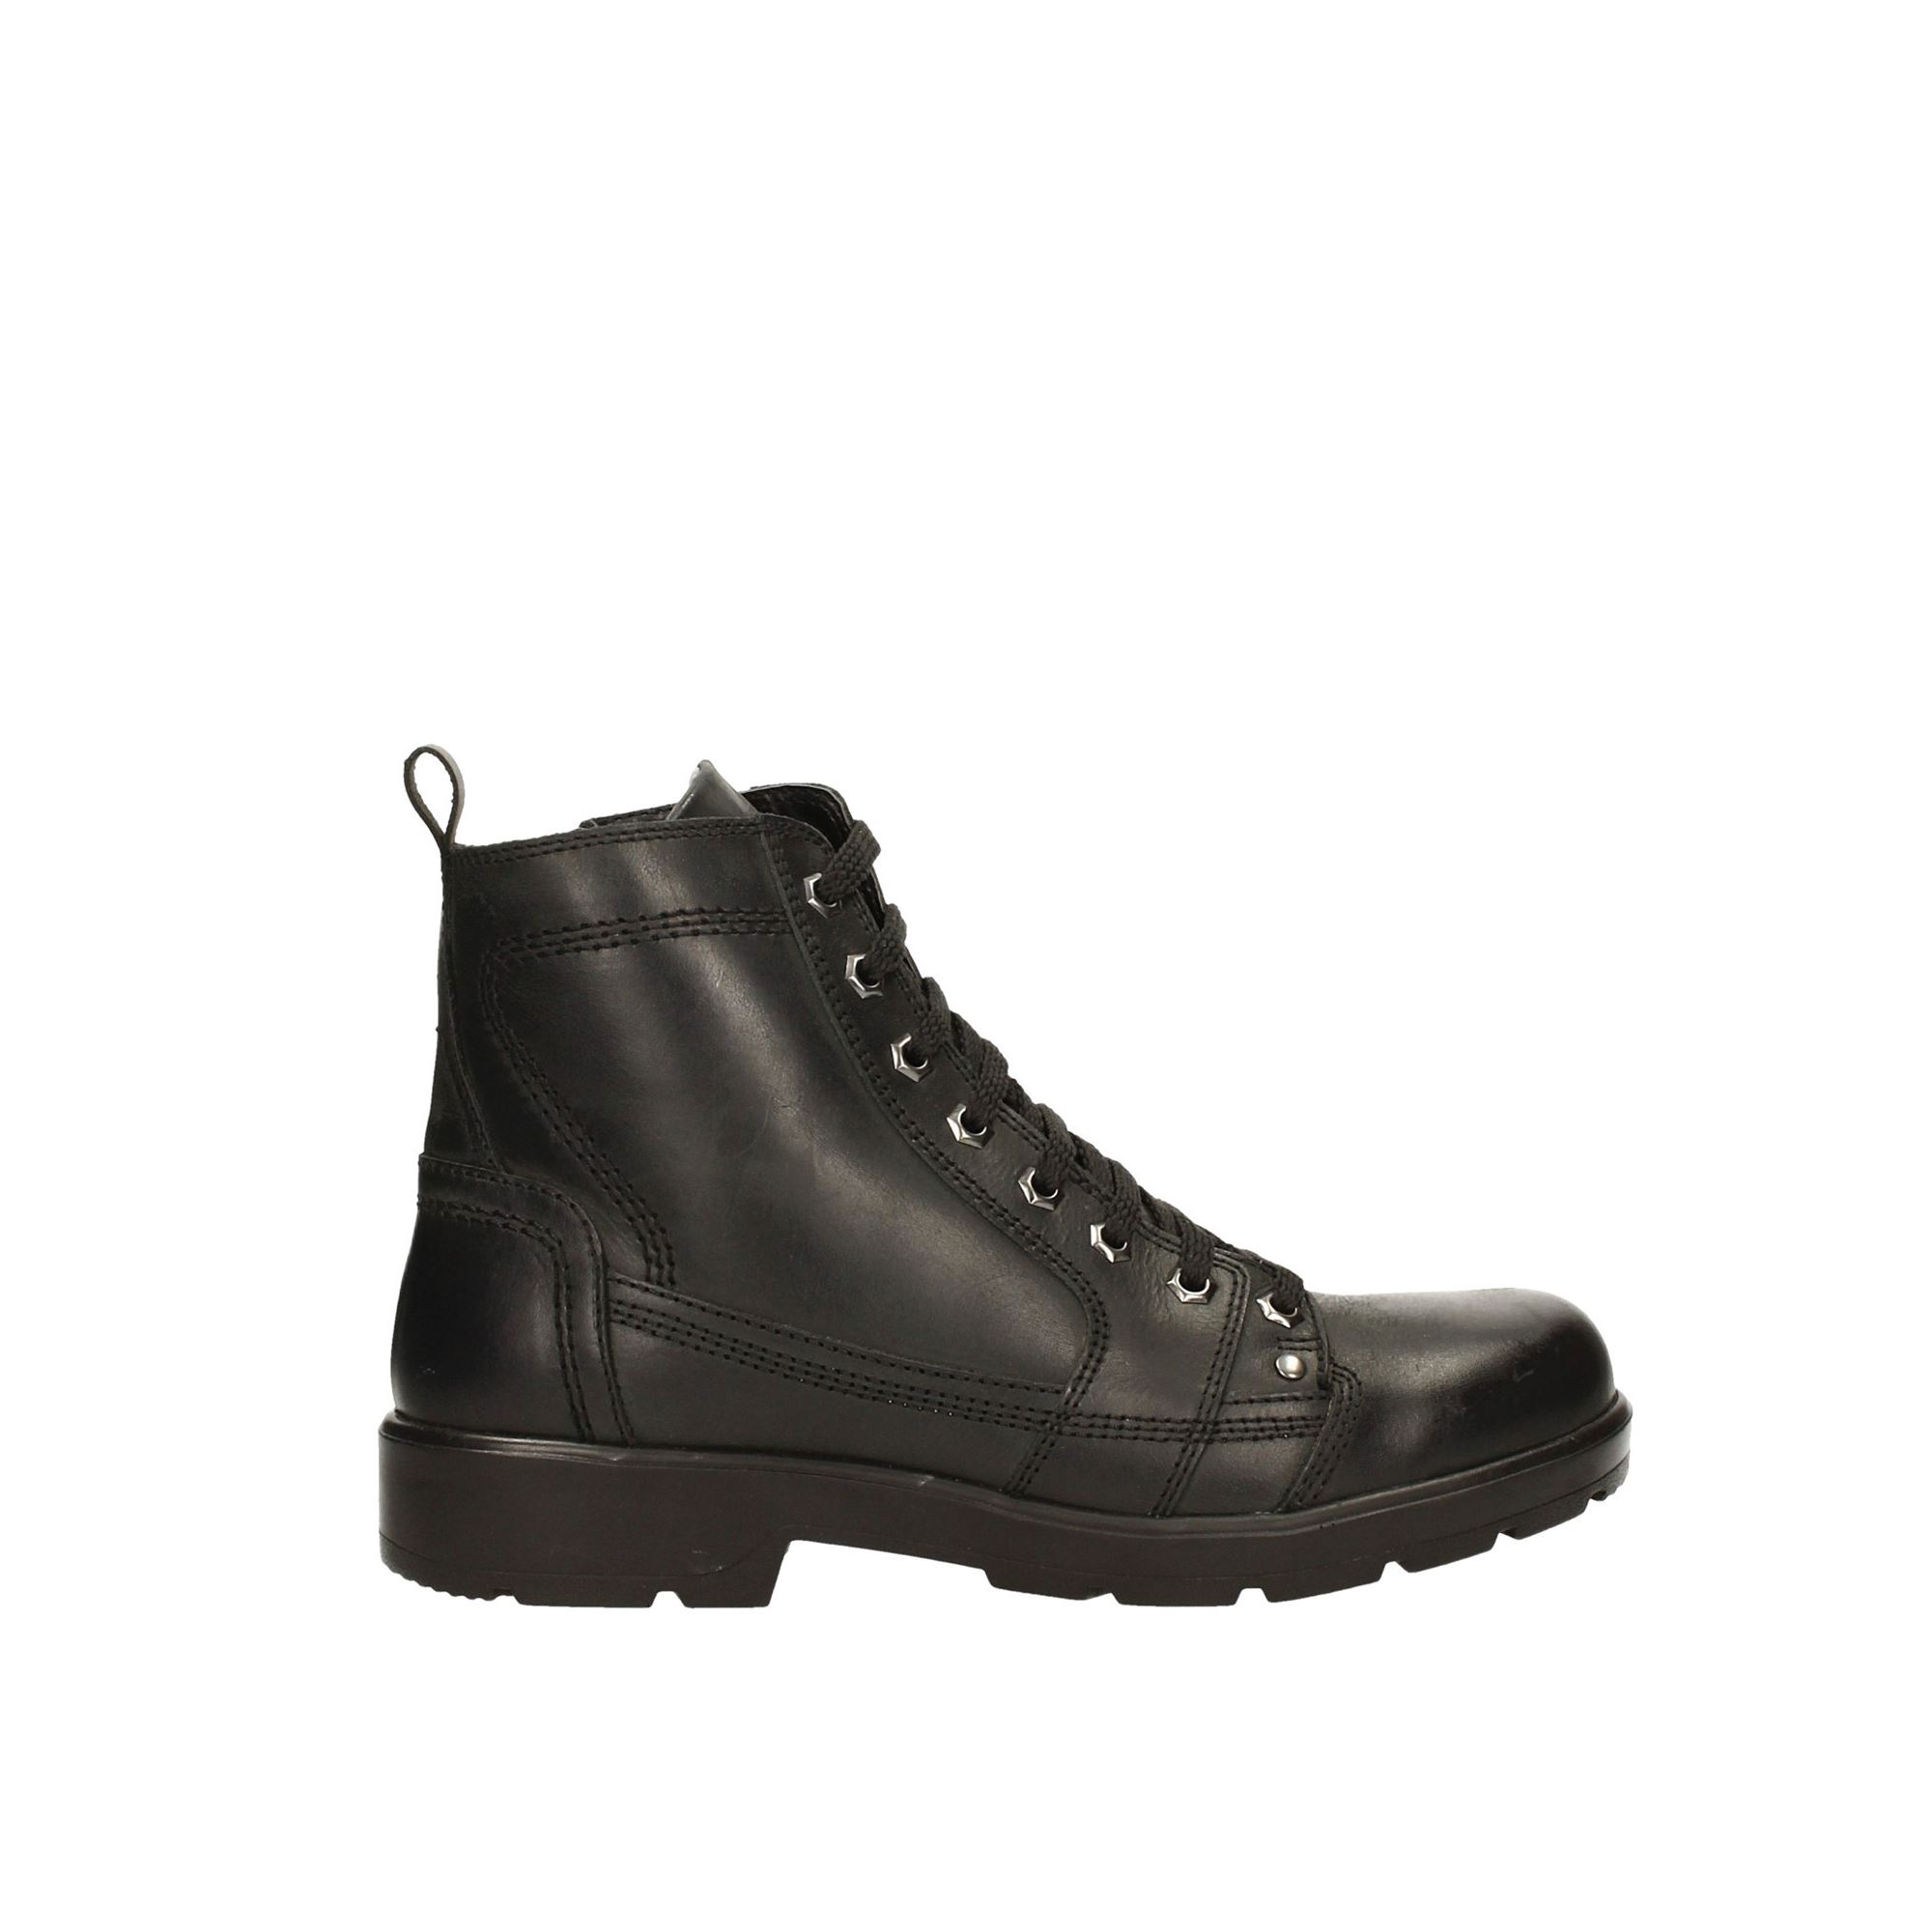 Tata Italia Shoes Man Stivaletti Black 2142